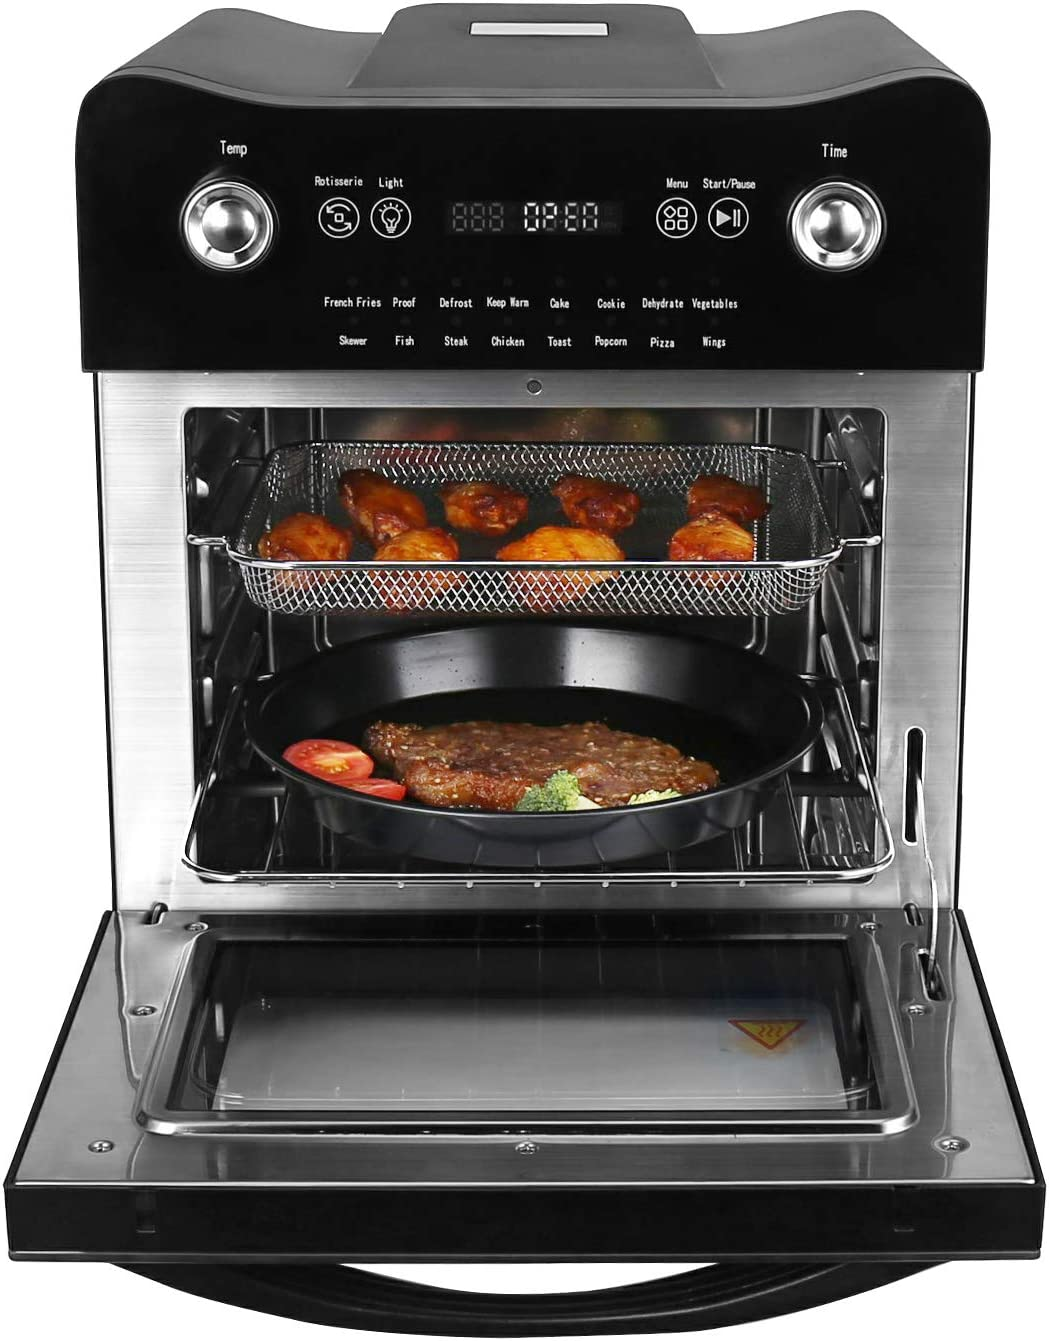 all-in-one-countertop-oven-for-dehydrating-foods